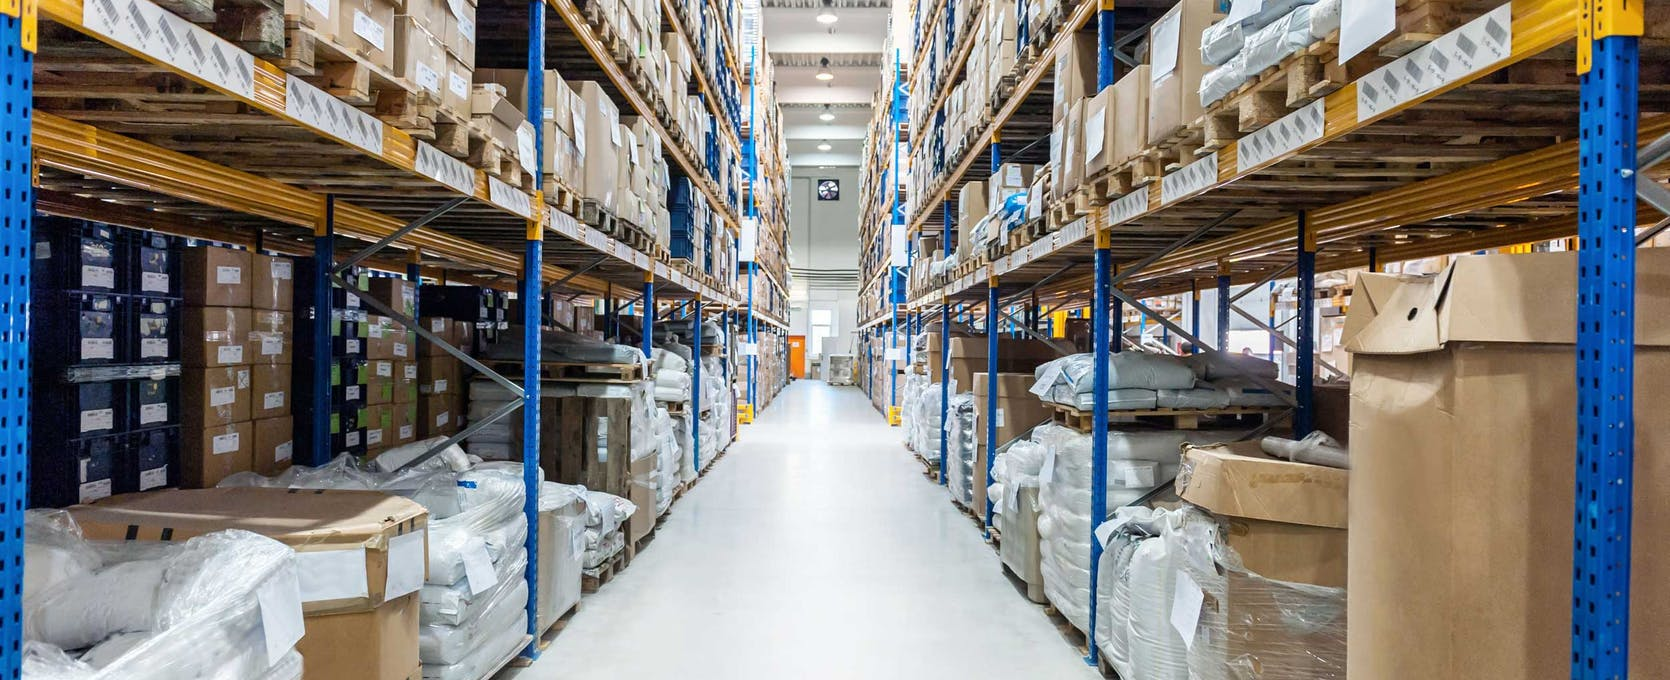 Warehouse distribution center, one component of the a supply chain